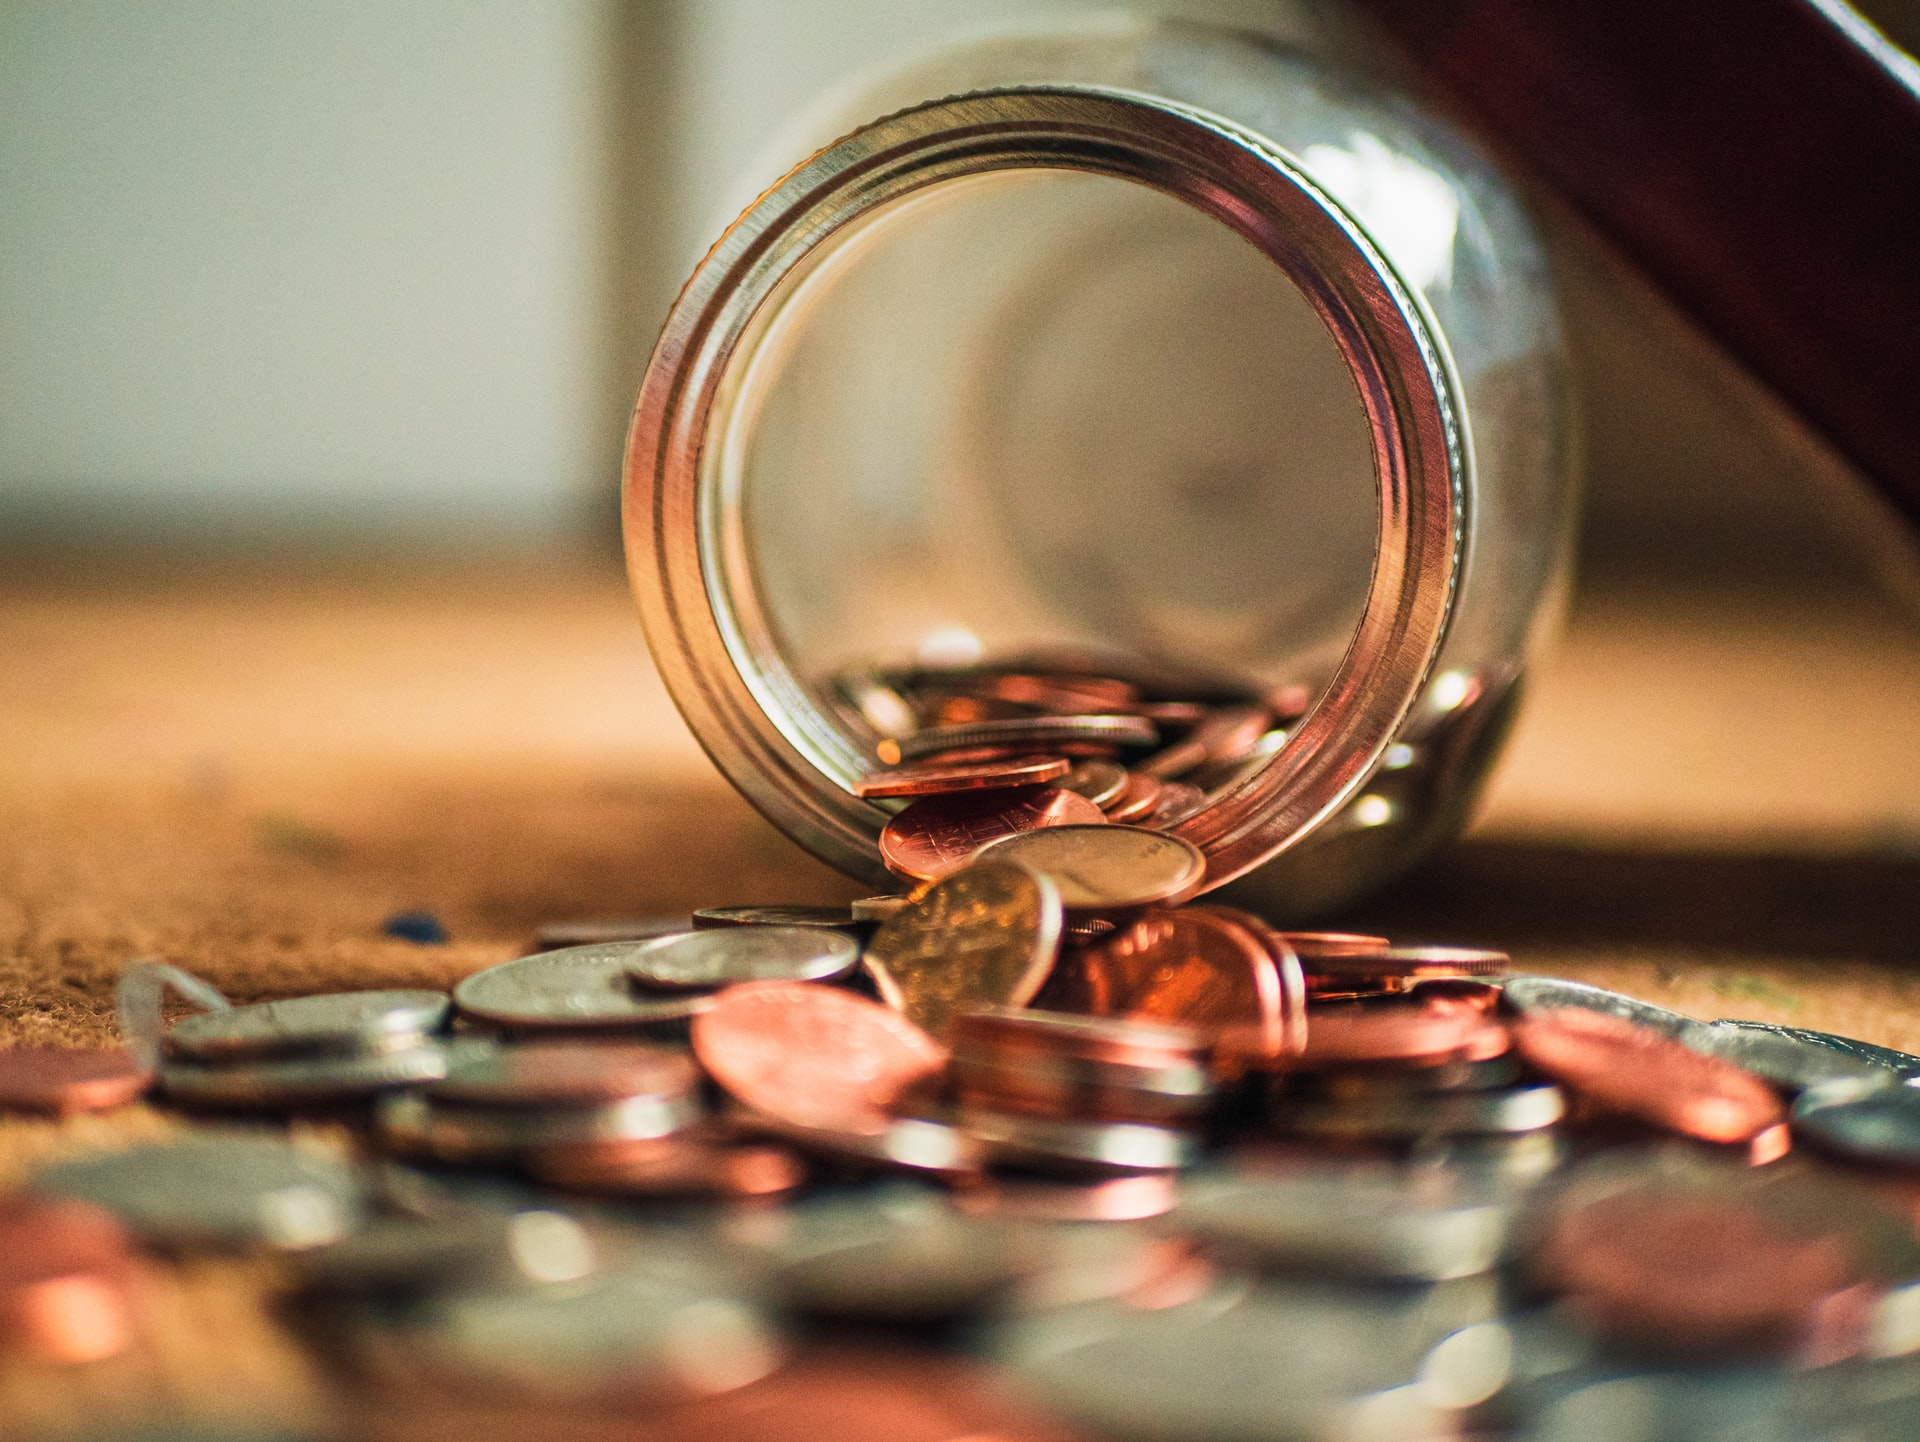 coins spilling out of a jar